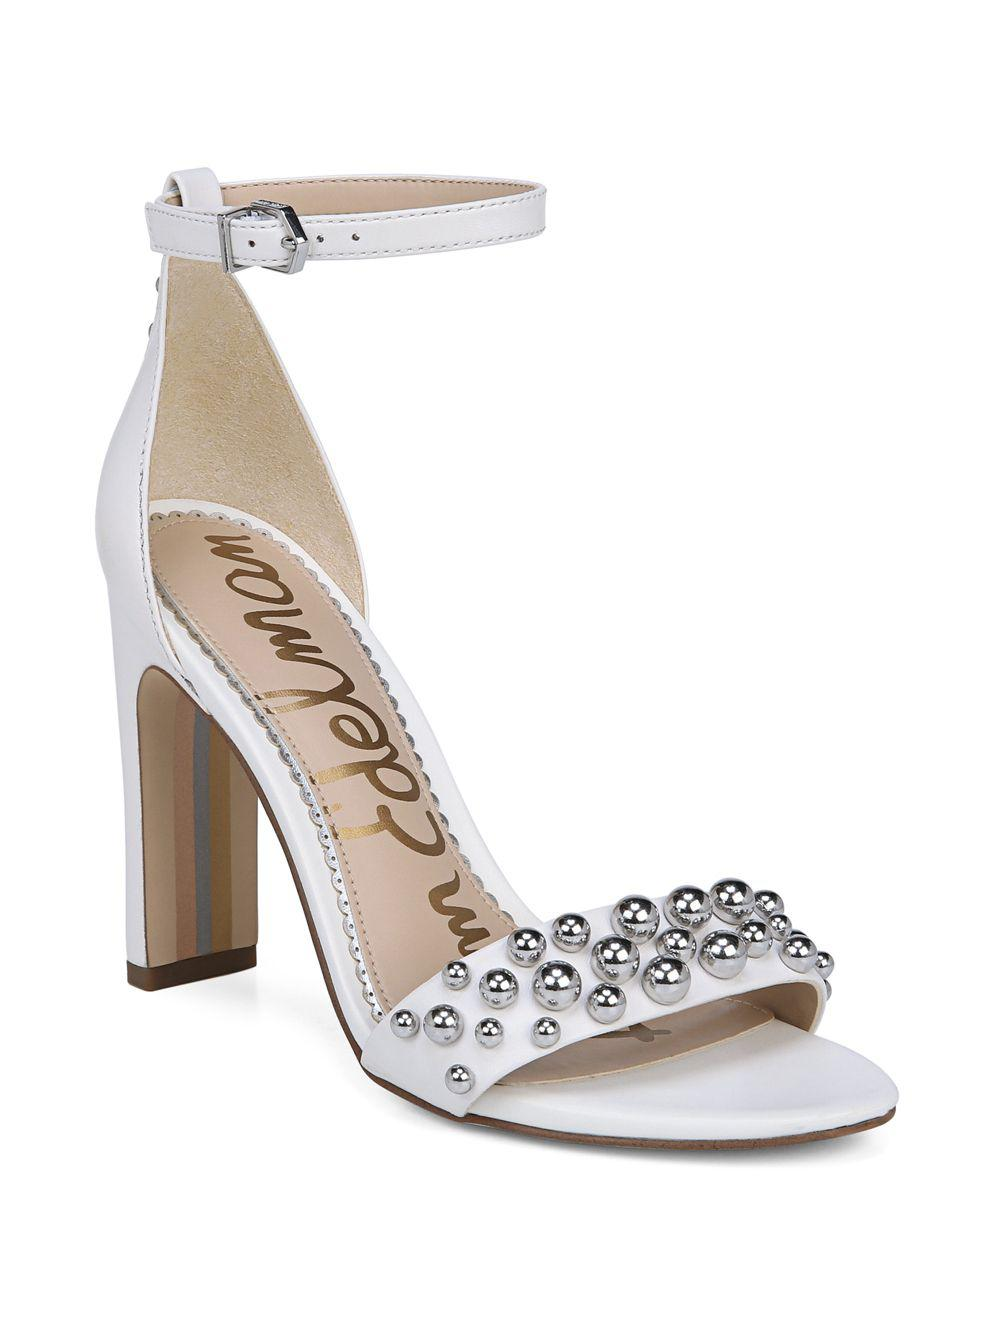 2299b975998 Lyst - Sam Edelman Yoshi Studded Ankle Strap Sandal in White - Save 47%